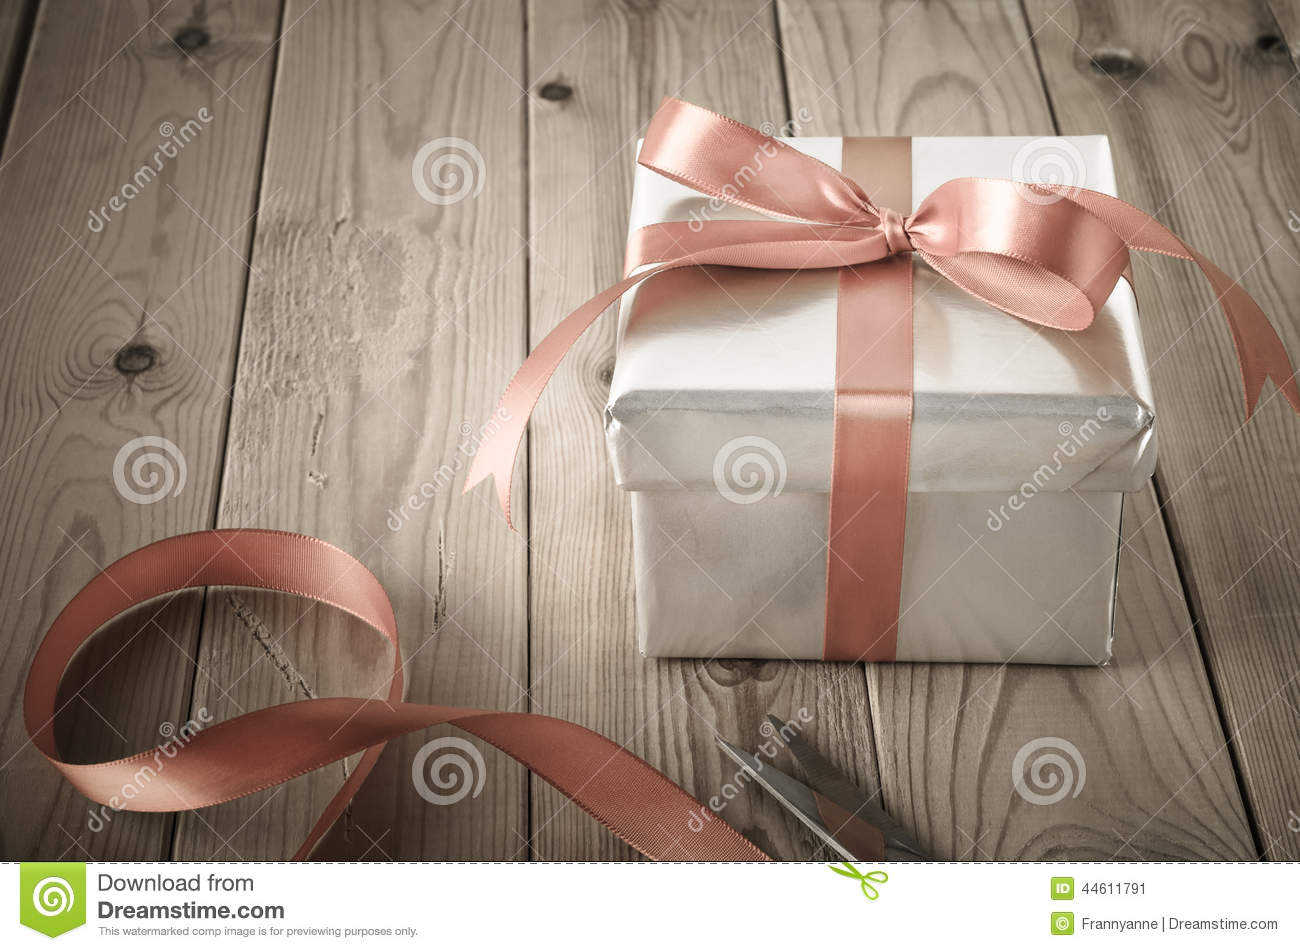 Download Wrapping Of Gift Box With Vintage Effect Stock Image - Image of gift, orientation: 44611791